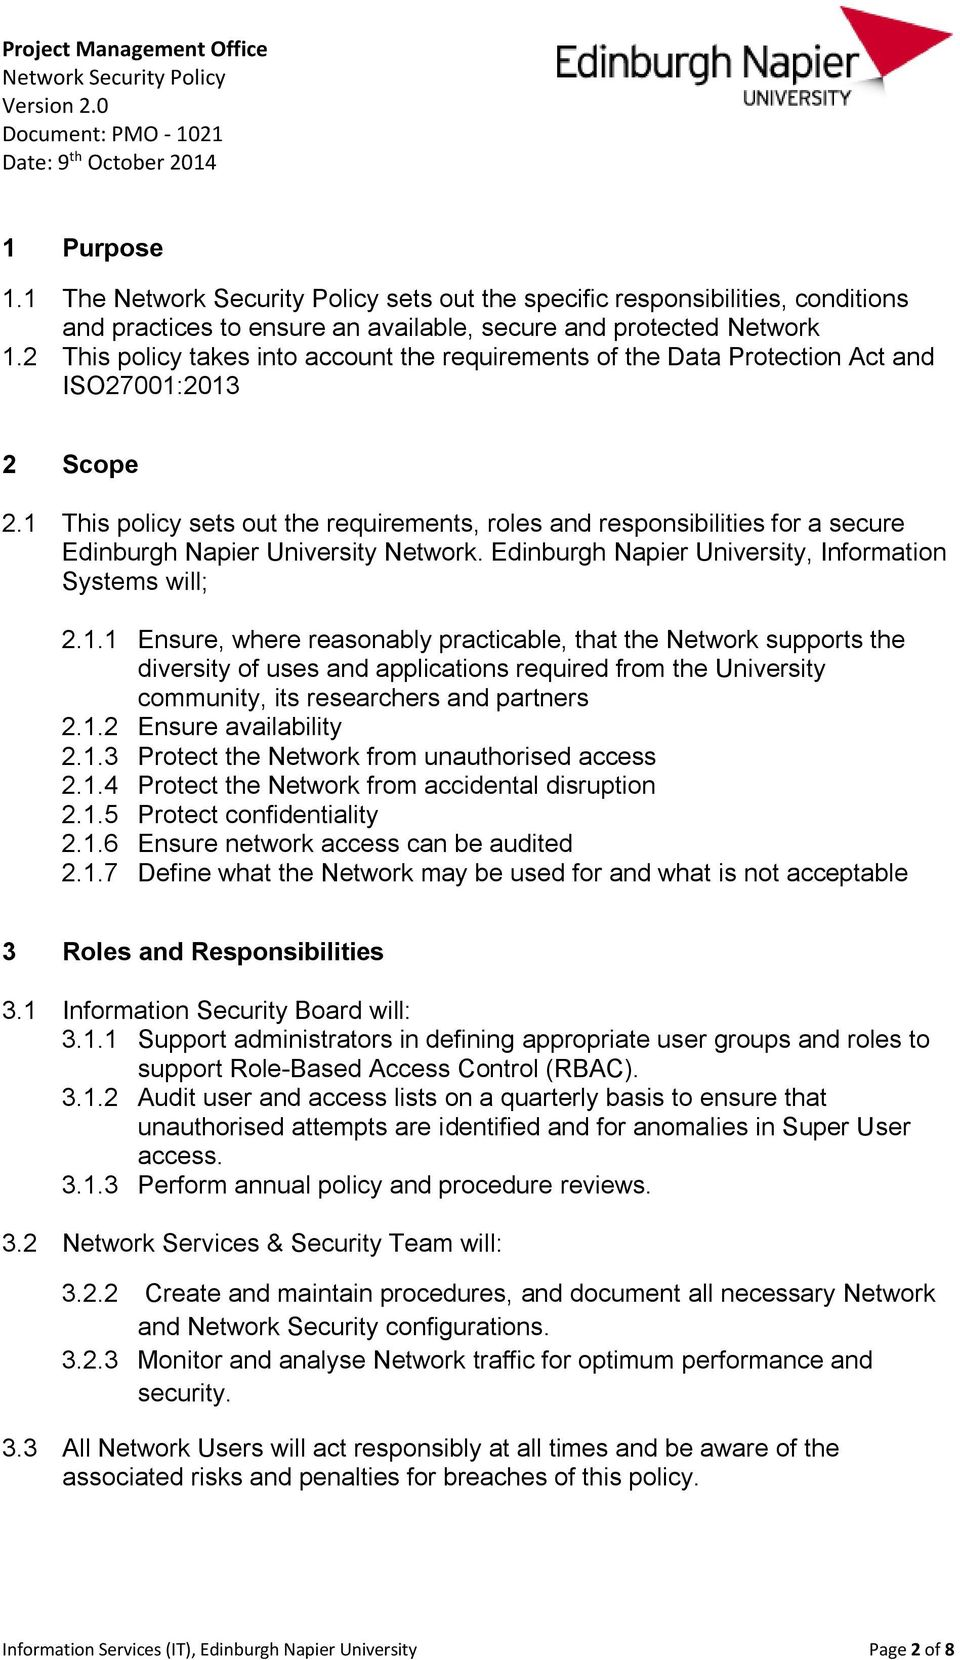 1 This policy sets out the requirements, roles and responsibilities for a secure Edinburgh Napier University Network. Edinburgh Napier University, Information Systems will; 2.1.1 Ensure, where reasonably practicable, that the Network supports the diversity of uses and applications required from the University community, its researchers and partners 2.